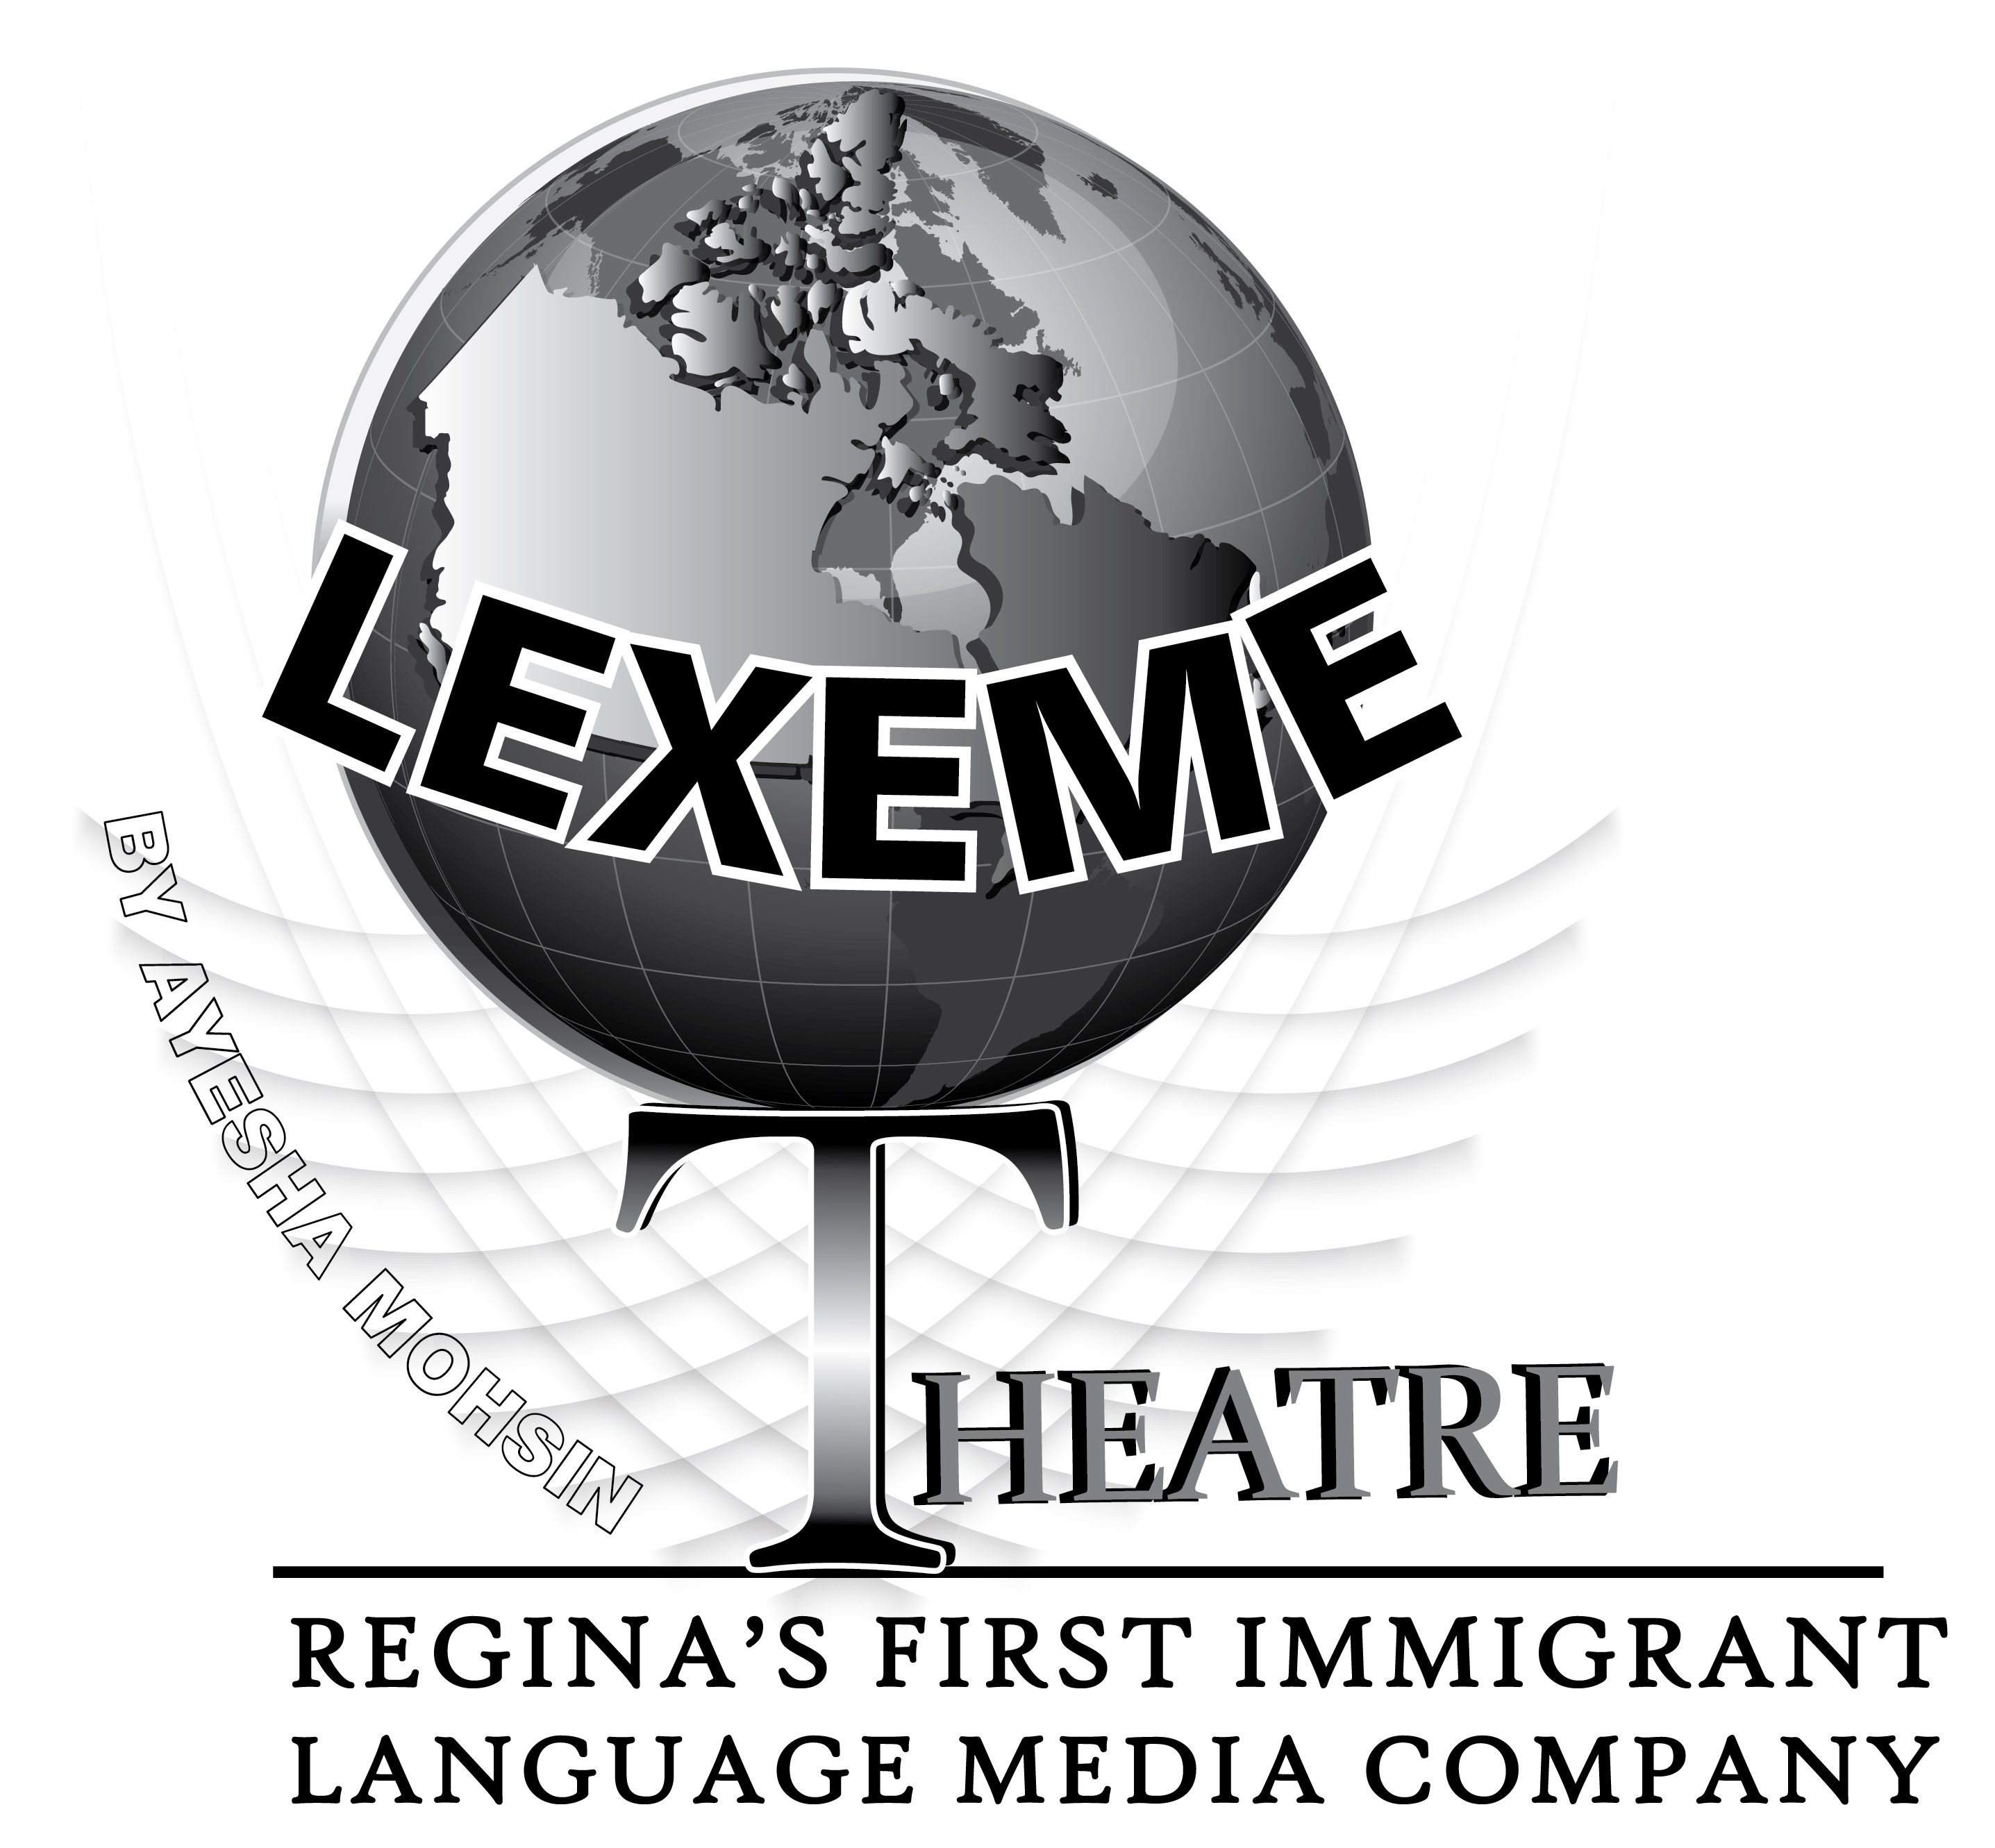 LEXEME THEATRE AND PRODUCTION HOUSE.